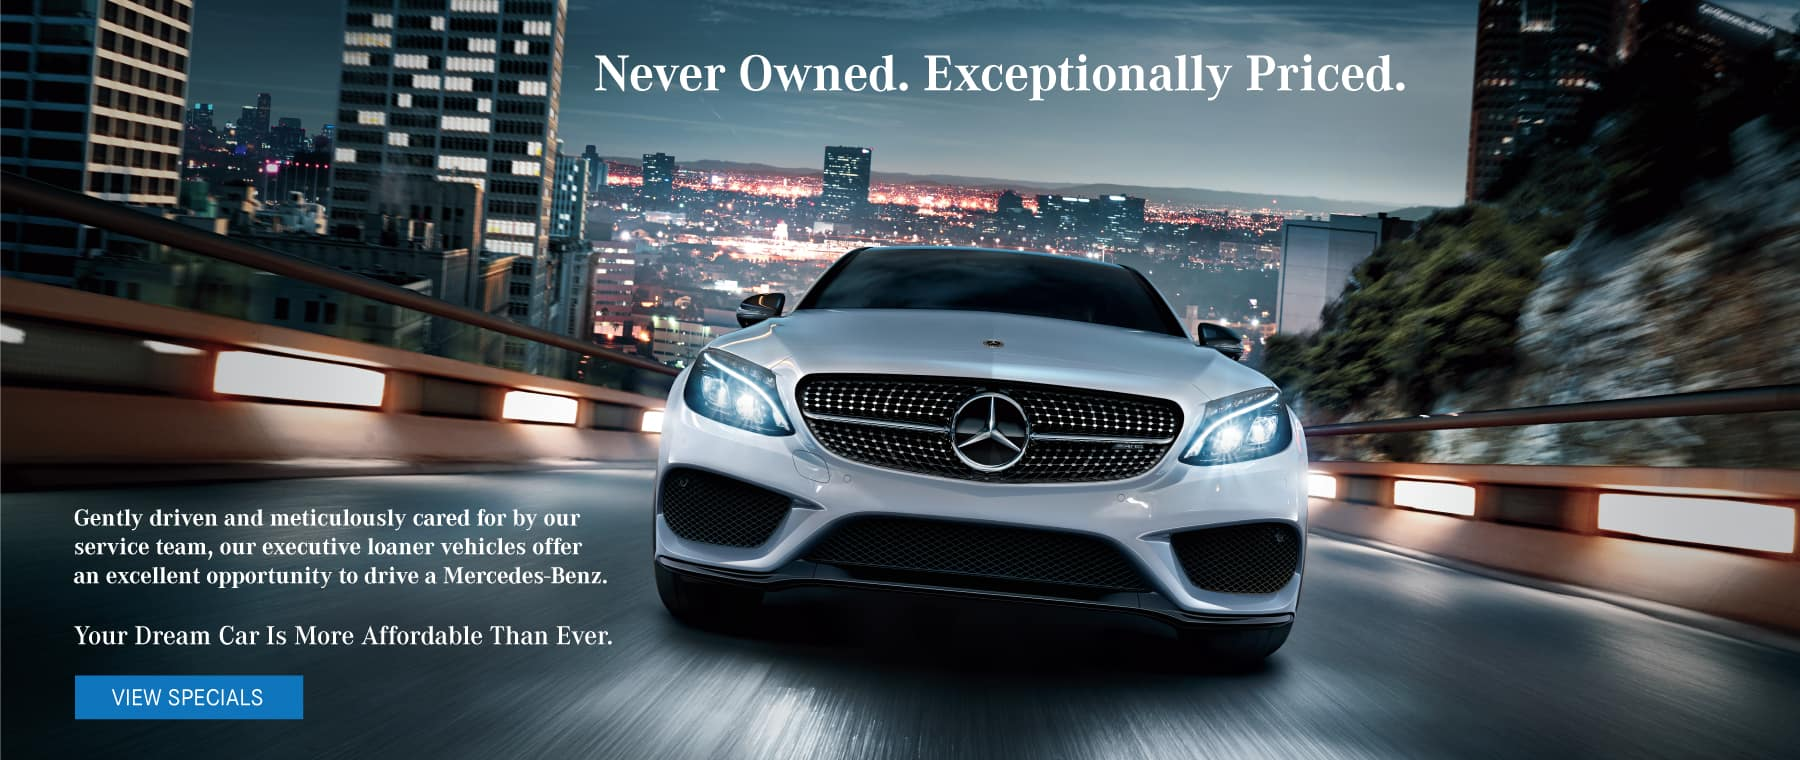 New & Used Luxury Auto Dealership in Warwick | Mercedes-Benz